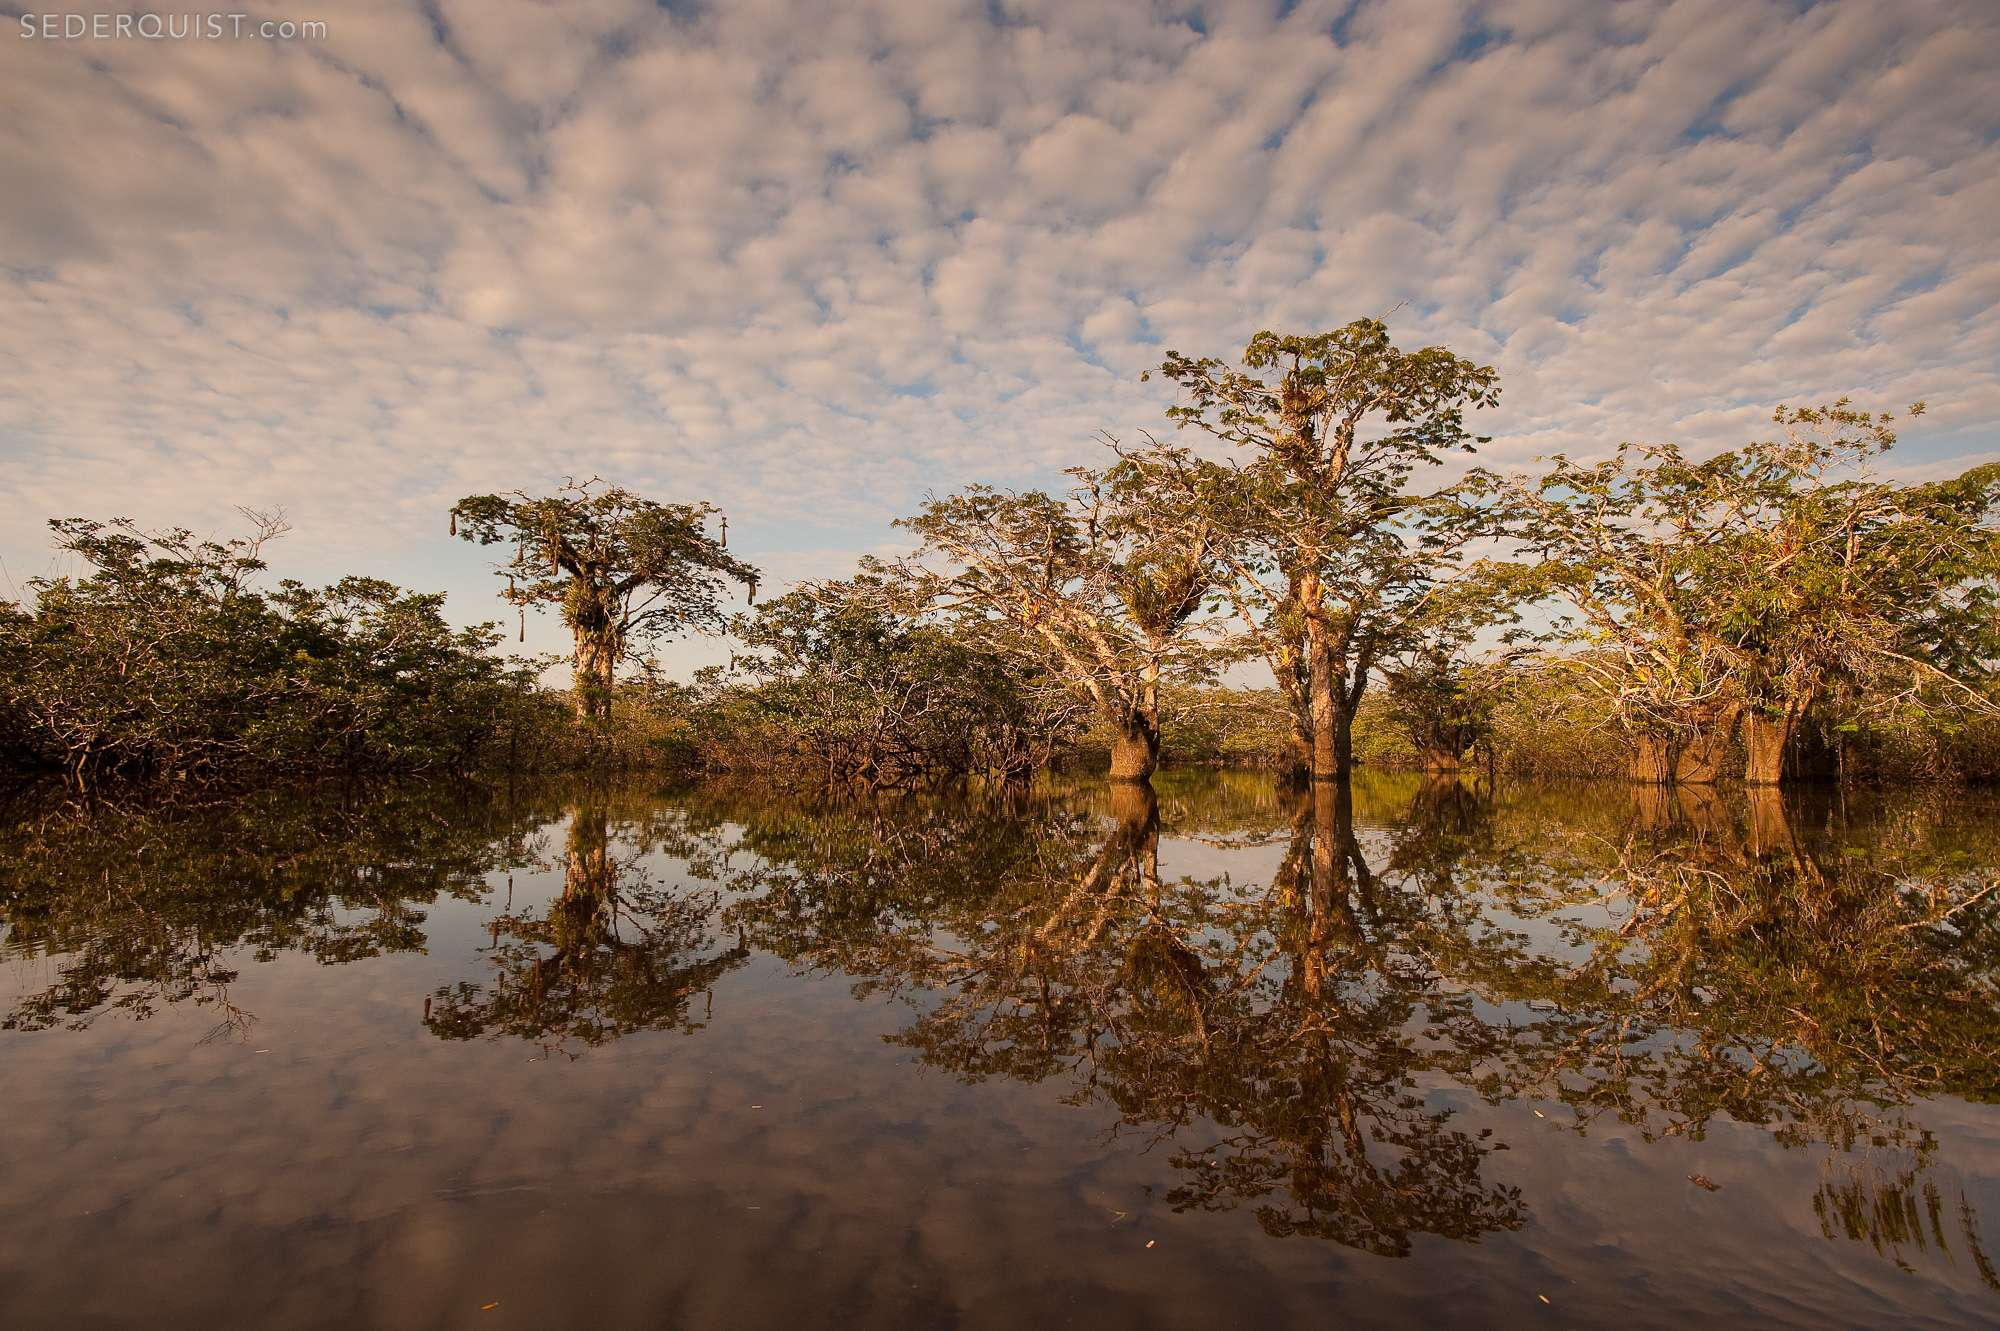 The Amazon and Cloud Forest - Betty Sederquist Photography